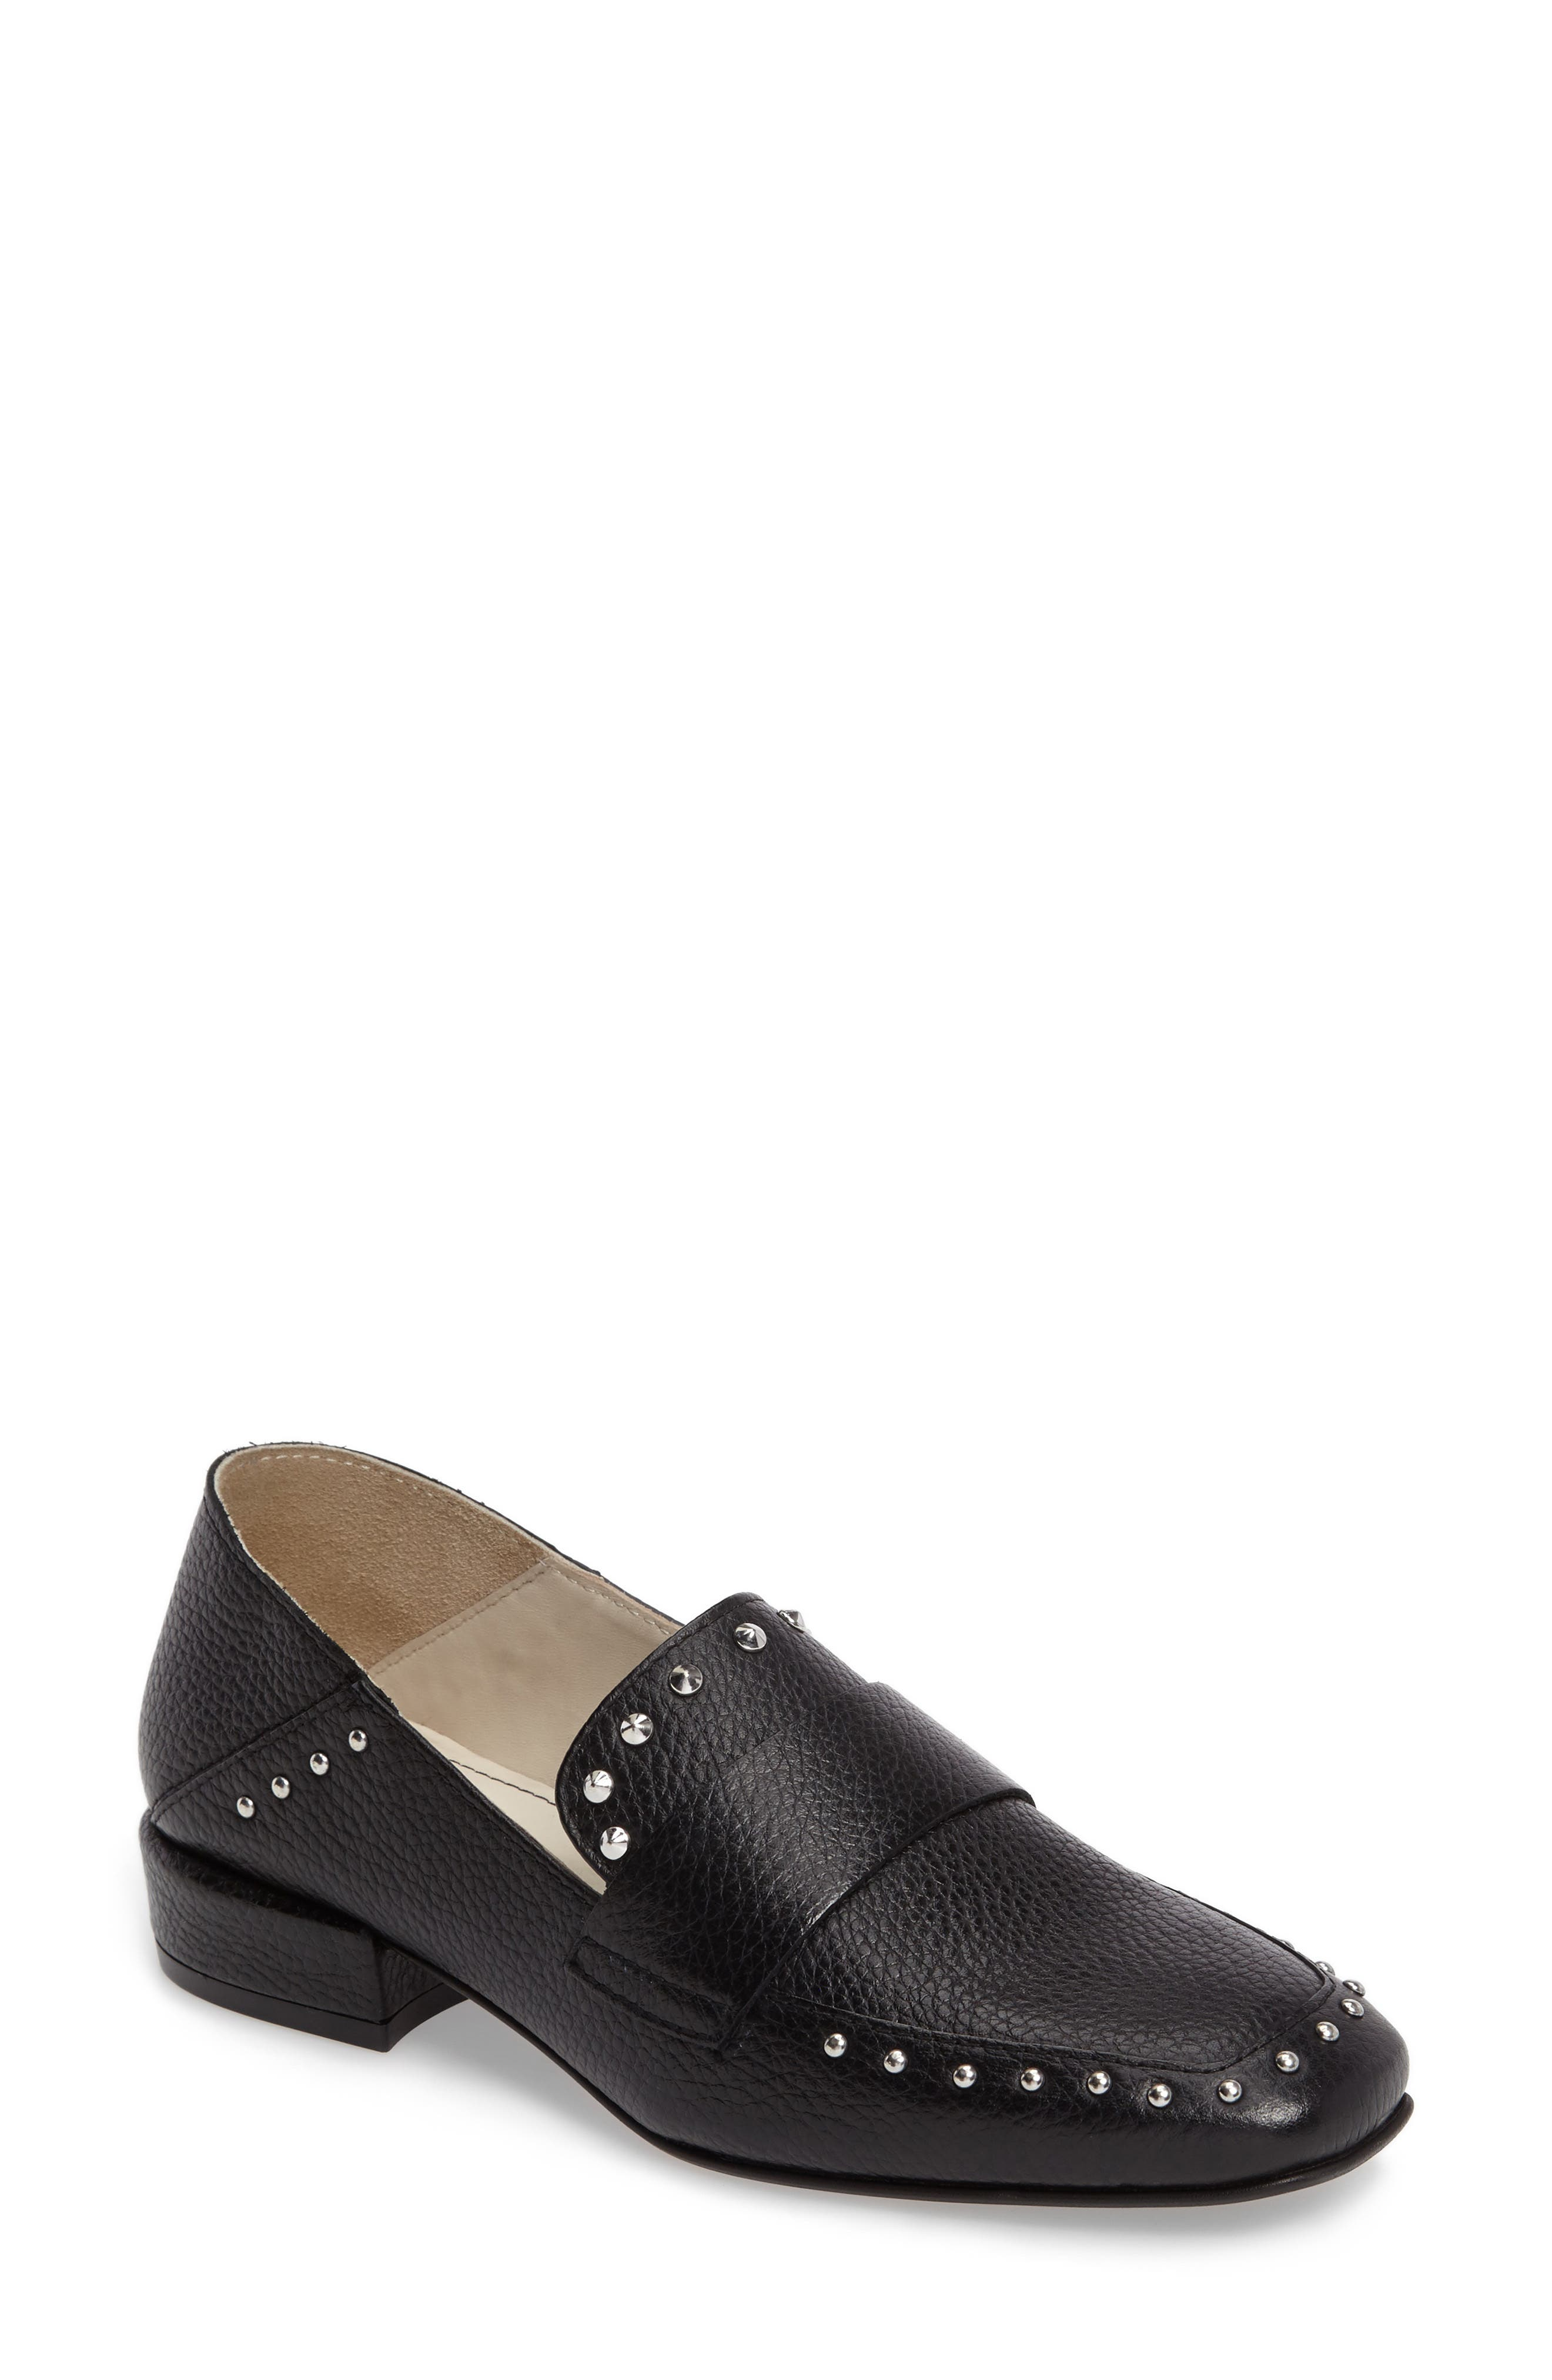 Alternate Image 1 Selected - Kenneth Cole New York Bowan 2 Convertible Drop Heel Loafer (Women)